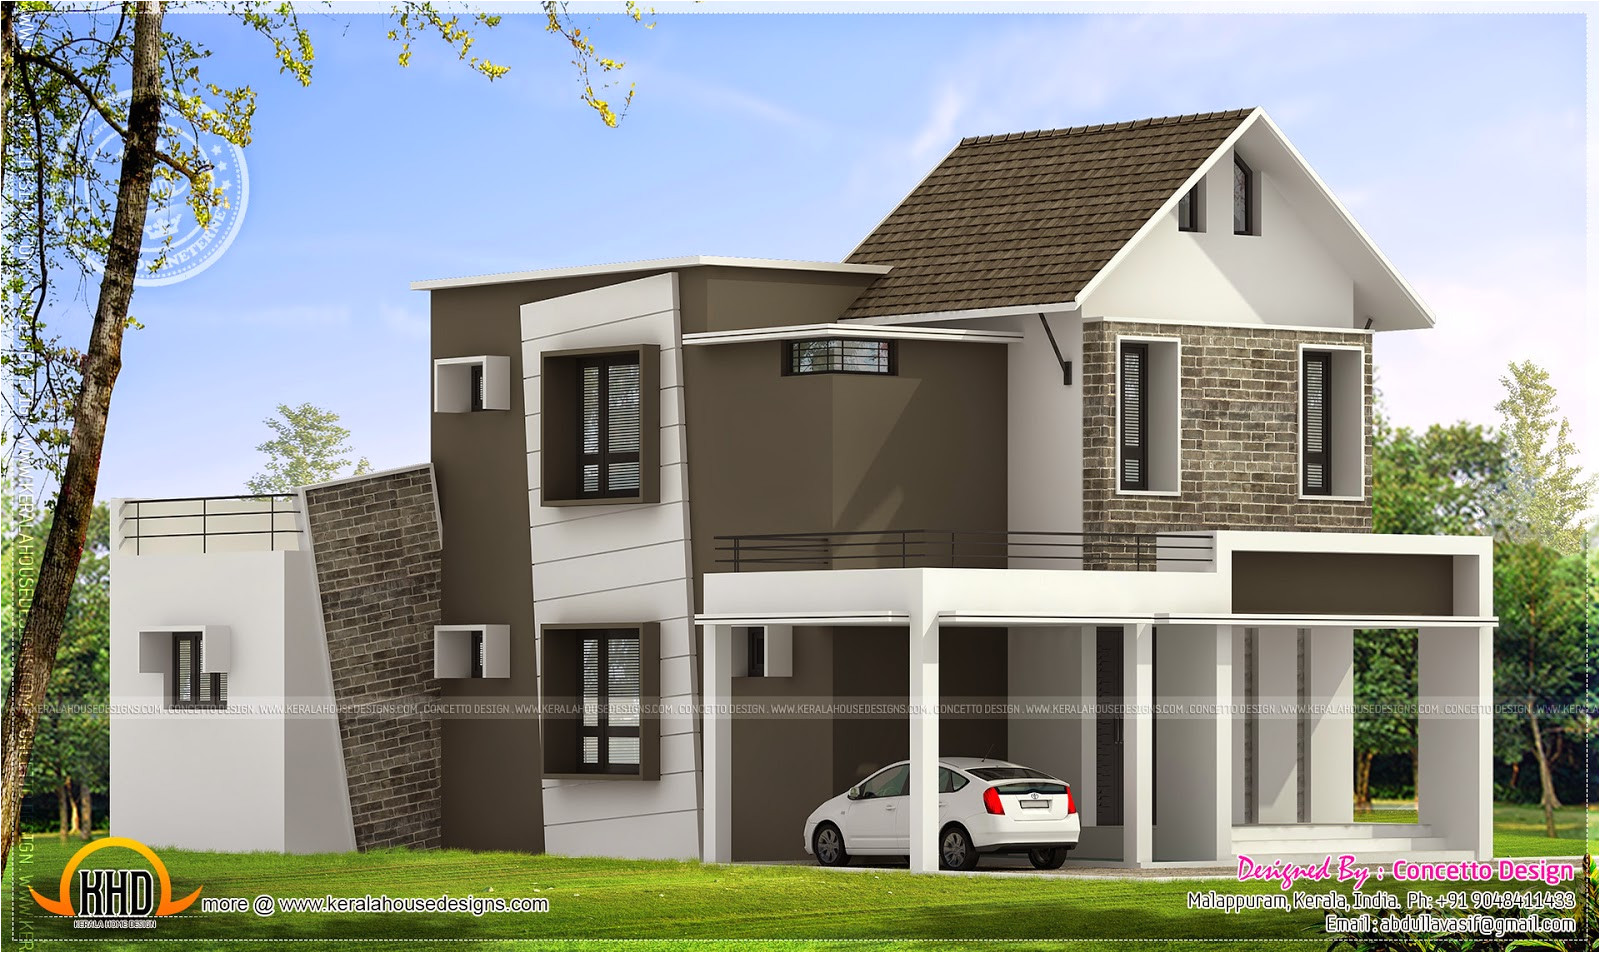 Home Plans and Design May 2014 Kerala Home Design and Floor Plans